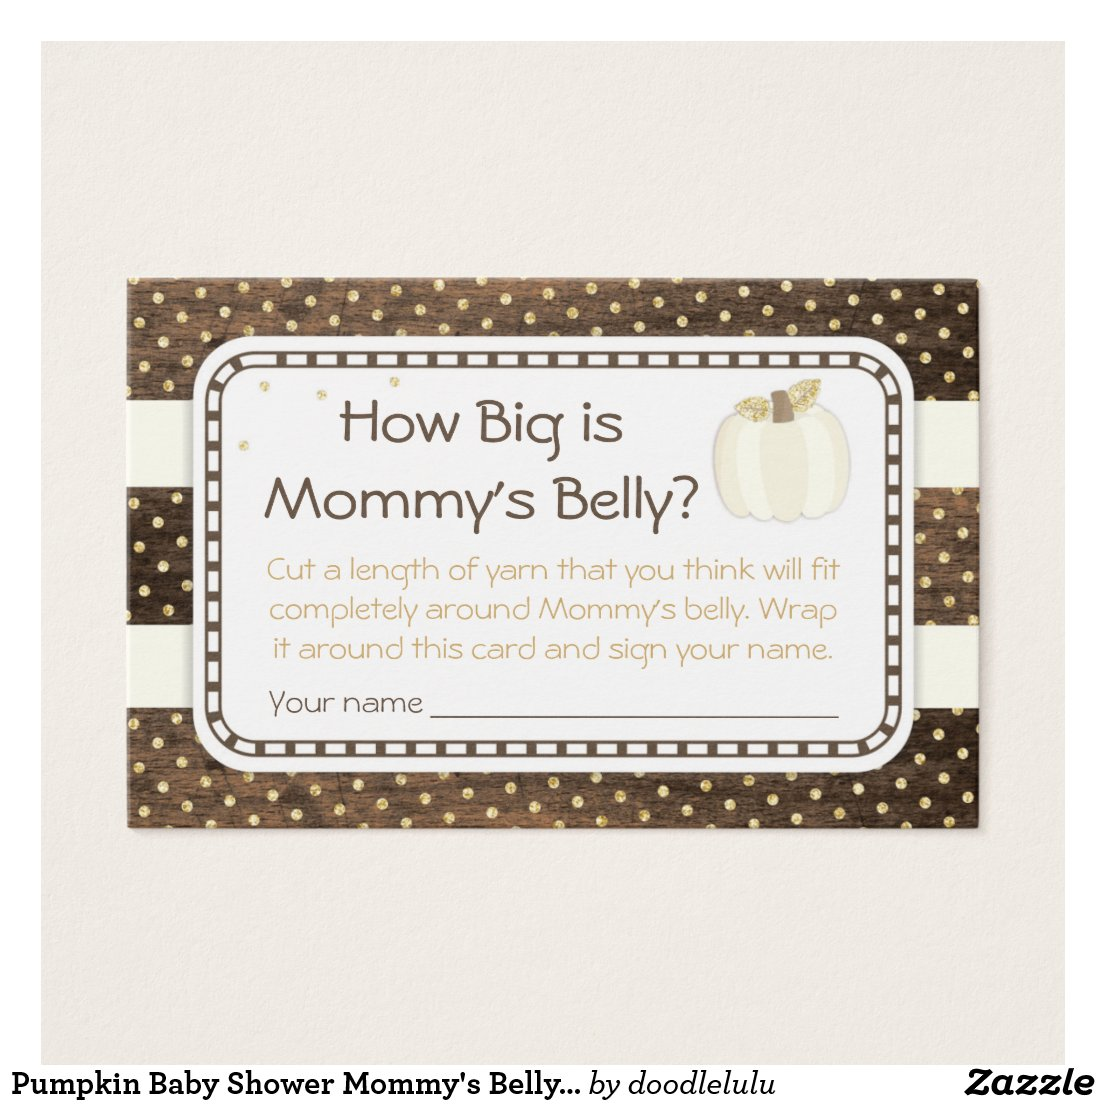 Pumpkin Baby Shower Mommy's Belly Game, Wood Ivory